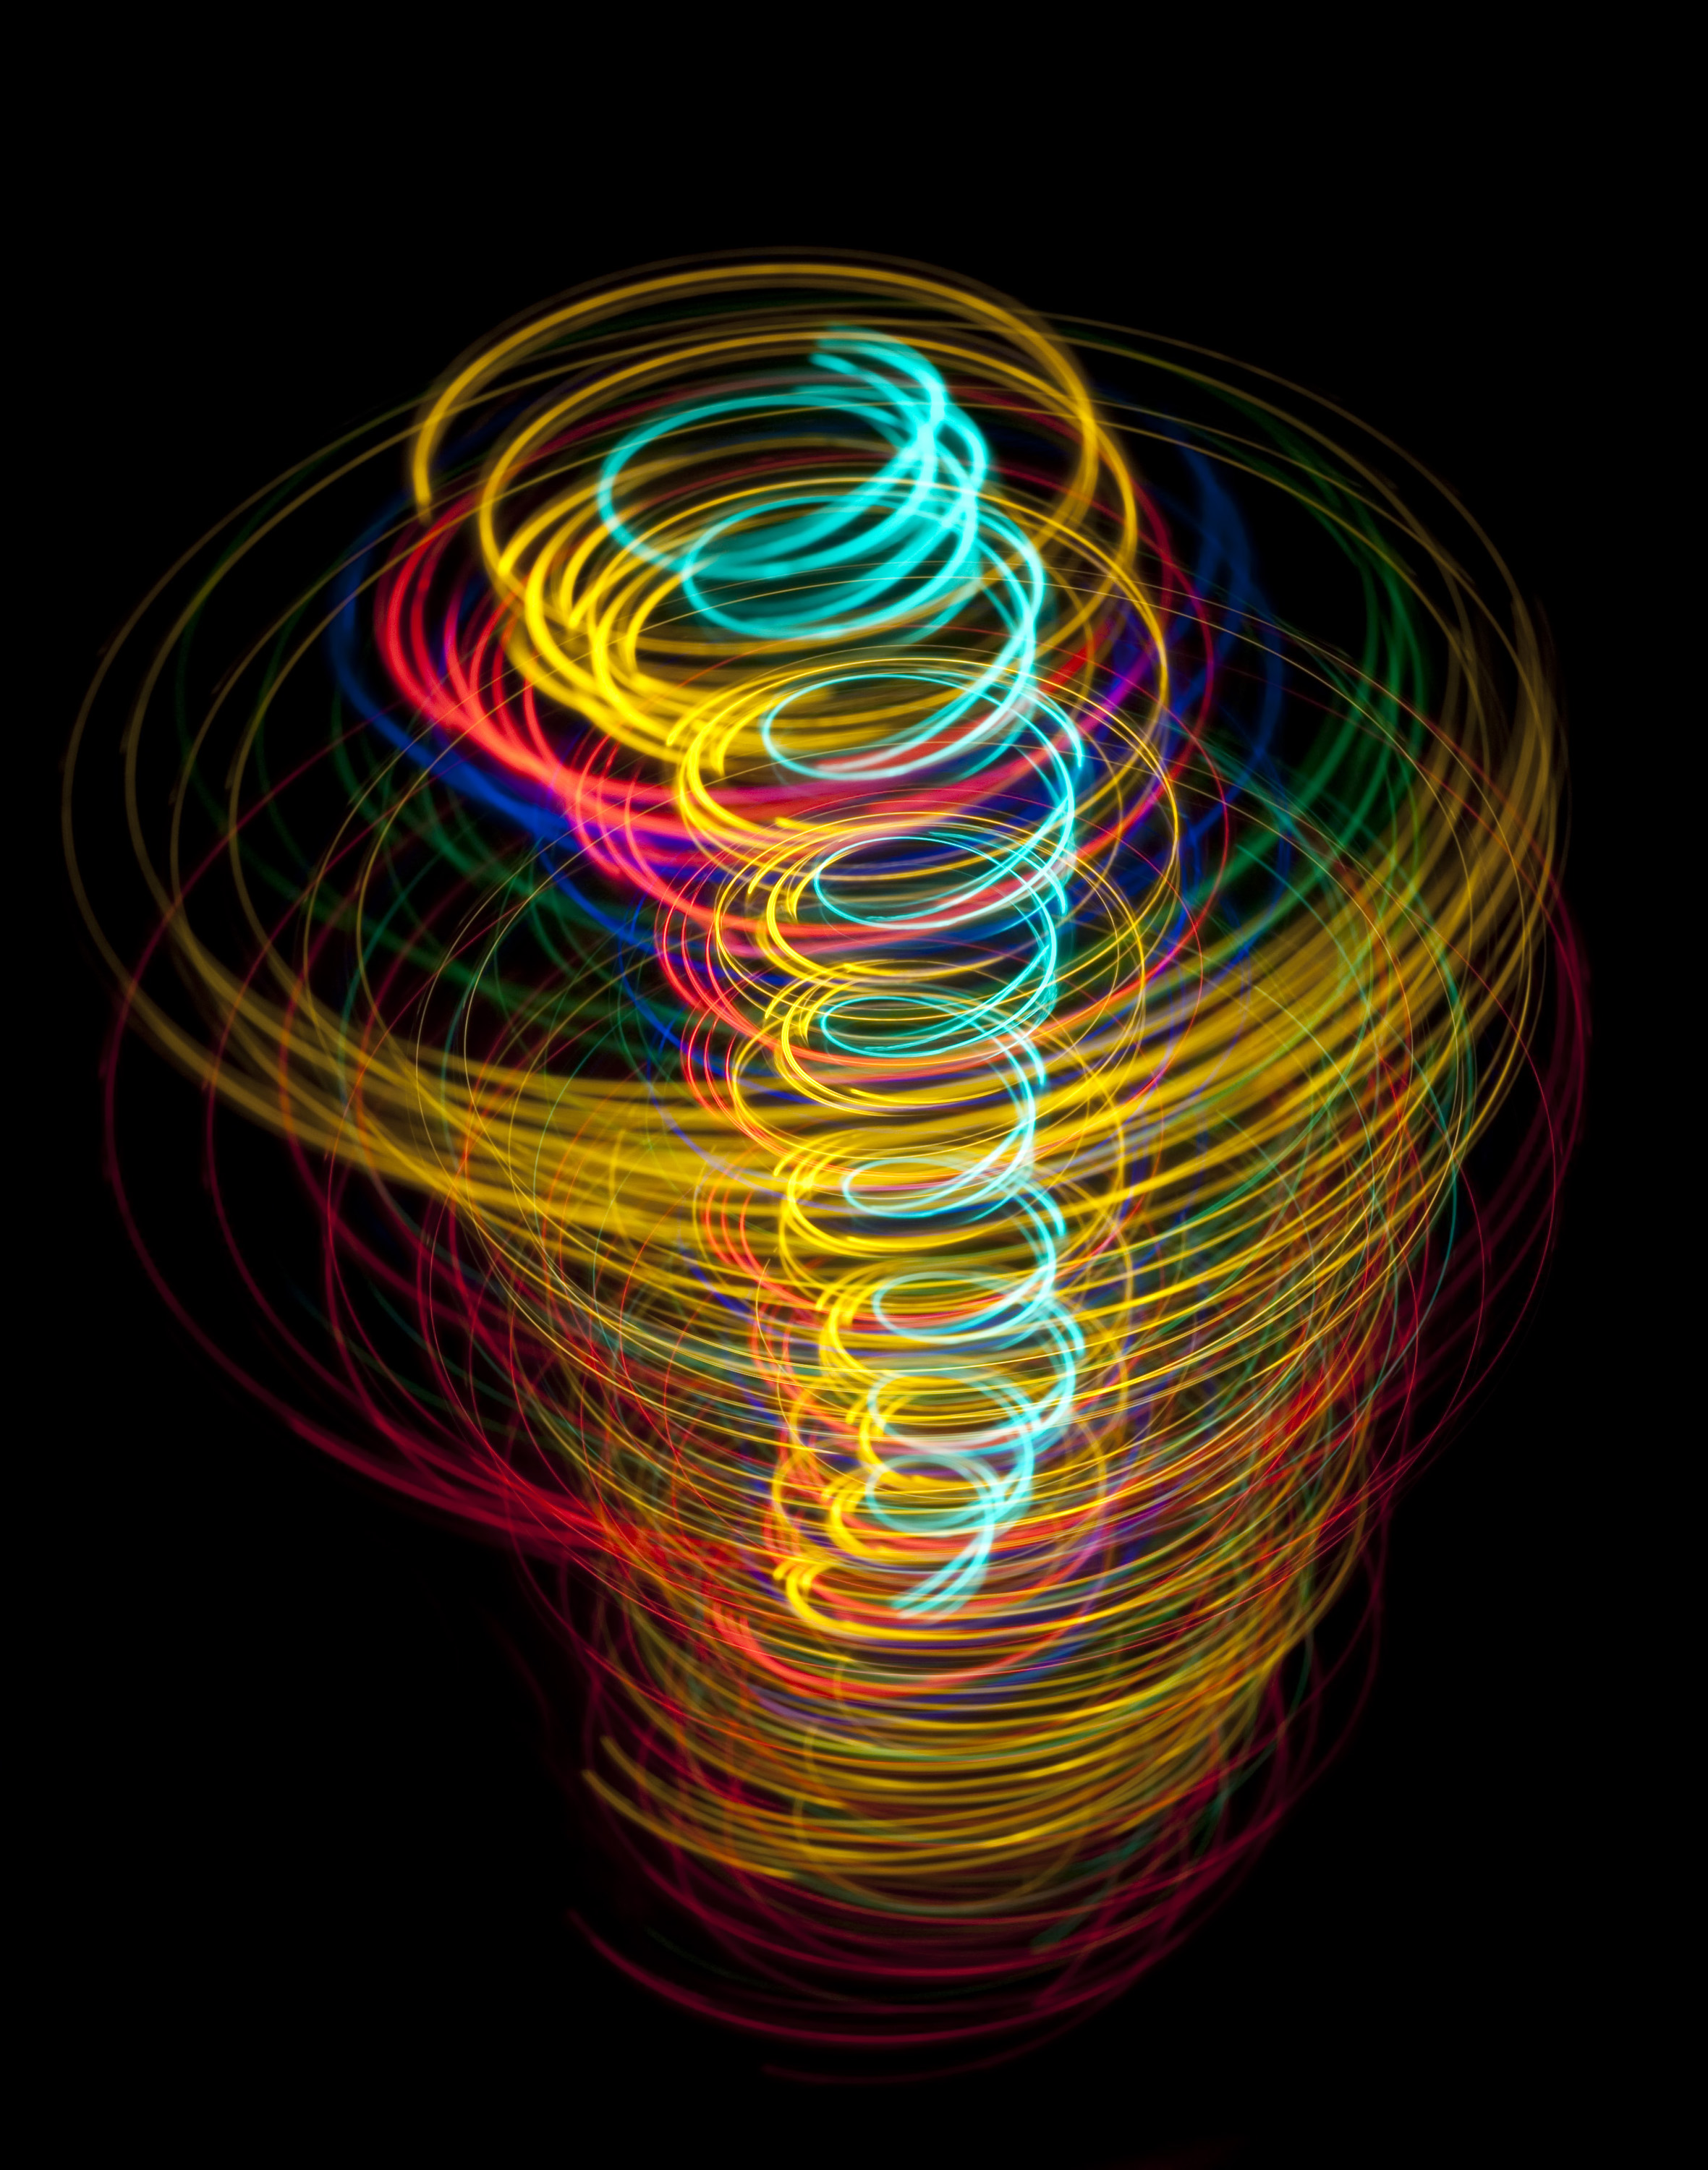 New 3d Abstract Wallpapers Free Stock Photo 3569 Light Tornado Freeimageslive